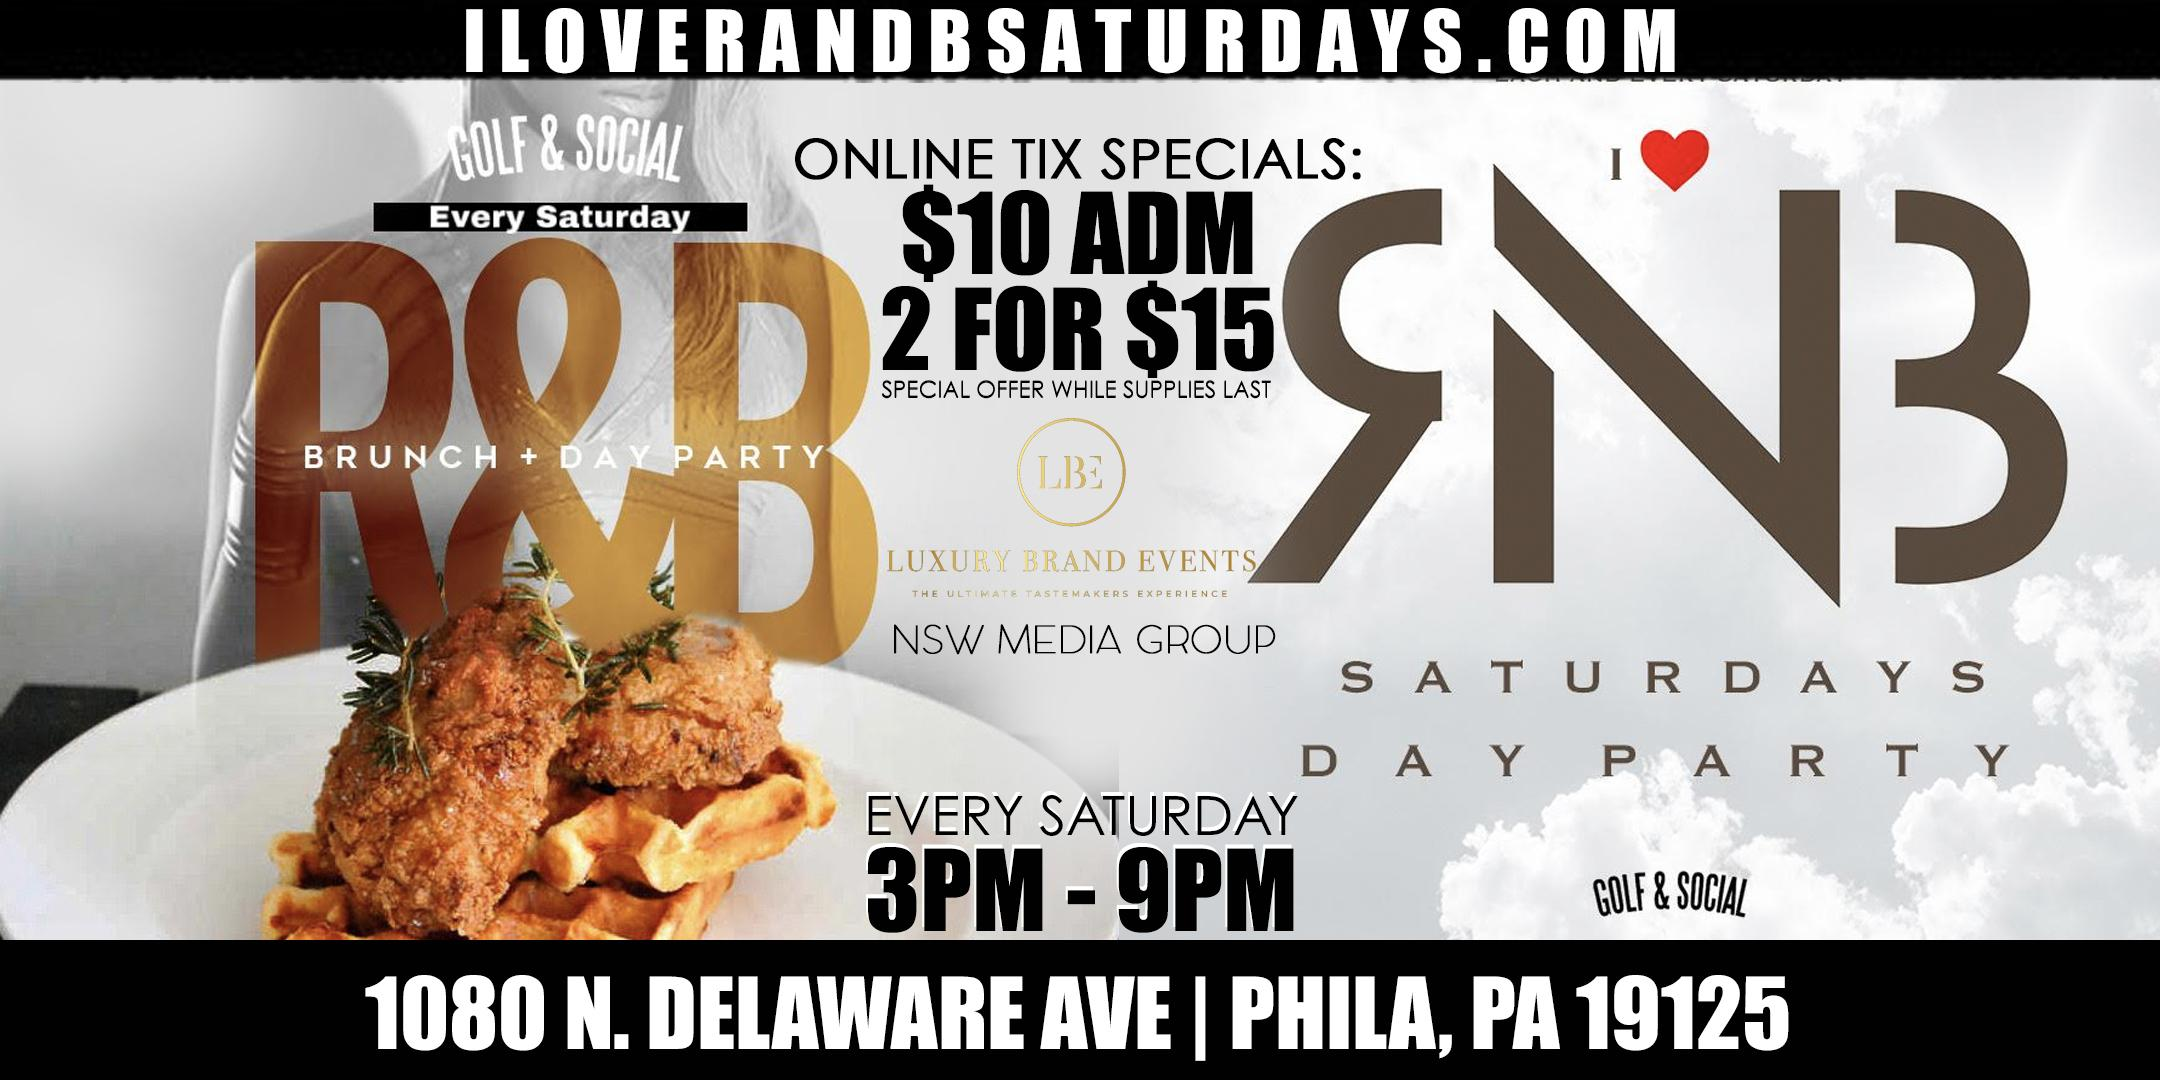 I Love R & B Saturdays Ultimate Day Party featuring Chicken & Waffles